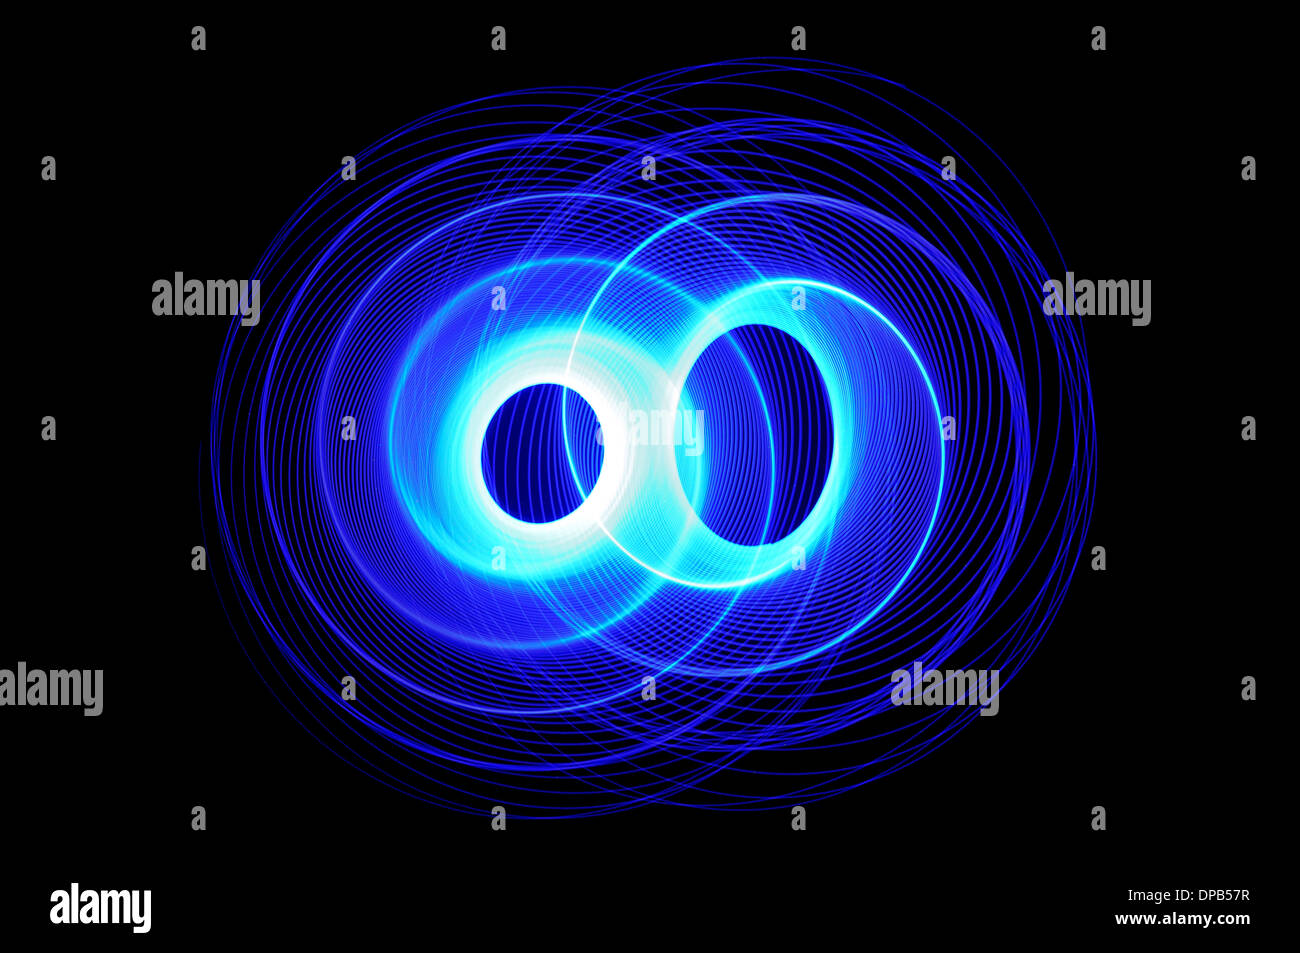 Overlapping long exposure abstract blue light trail spirals - Stock Image